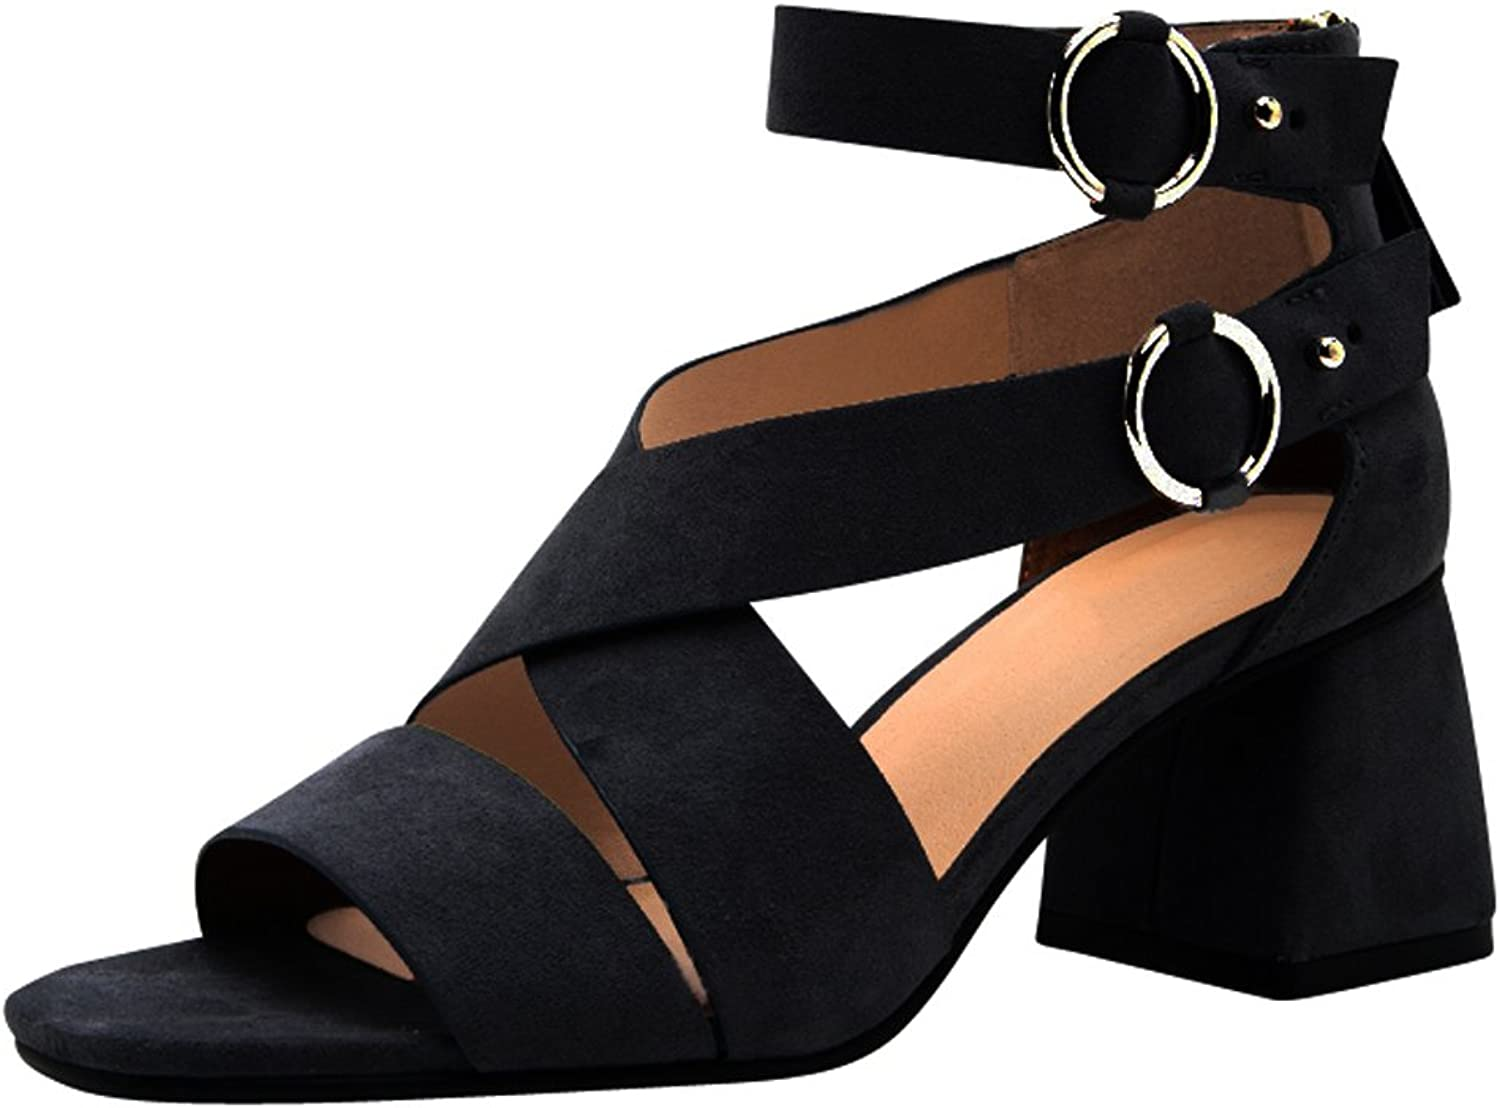 Cambridge Select Women's Open Toe Crisscross Buckled Ankle Strap Flared Sculptural Chunky Block Heel Sandal